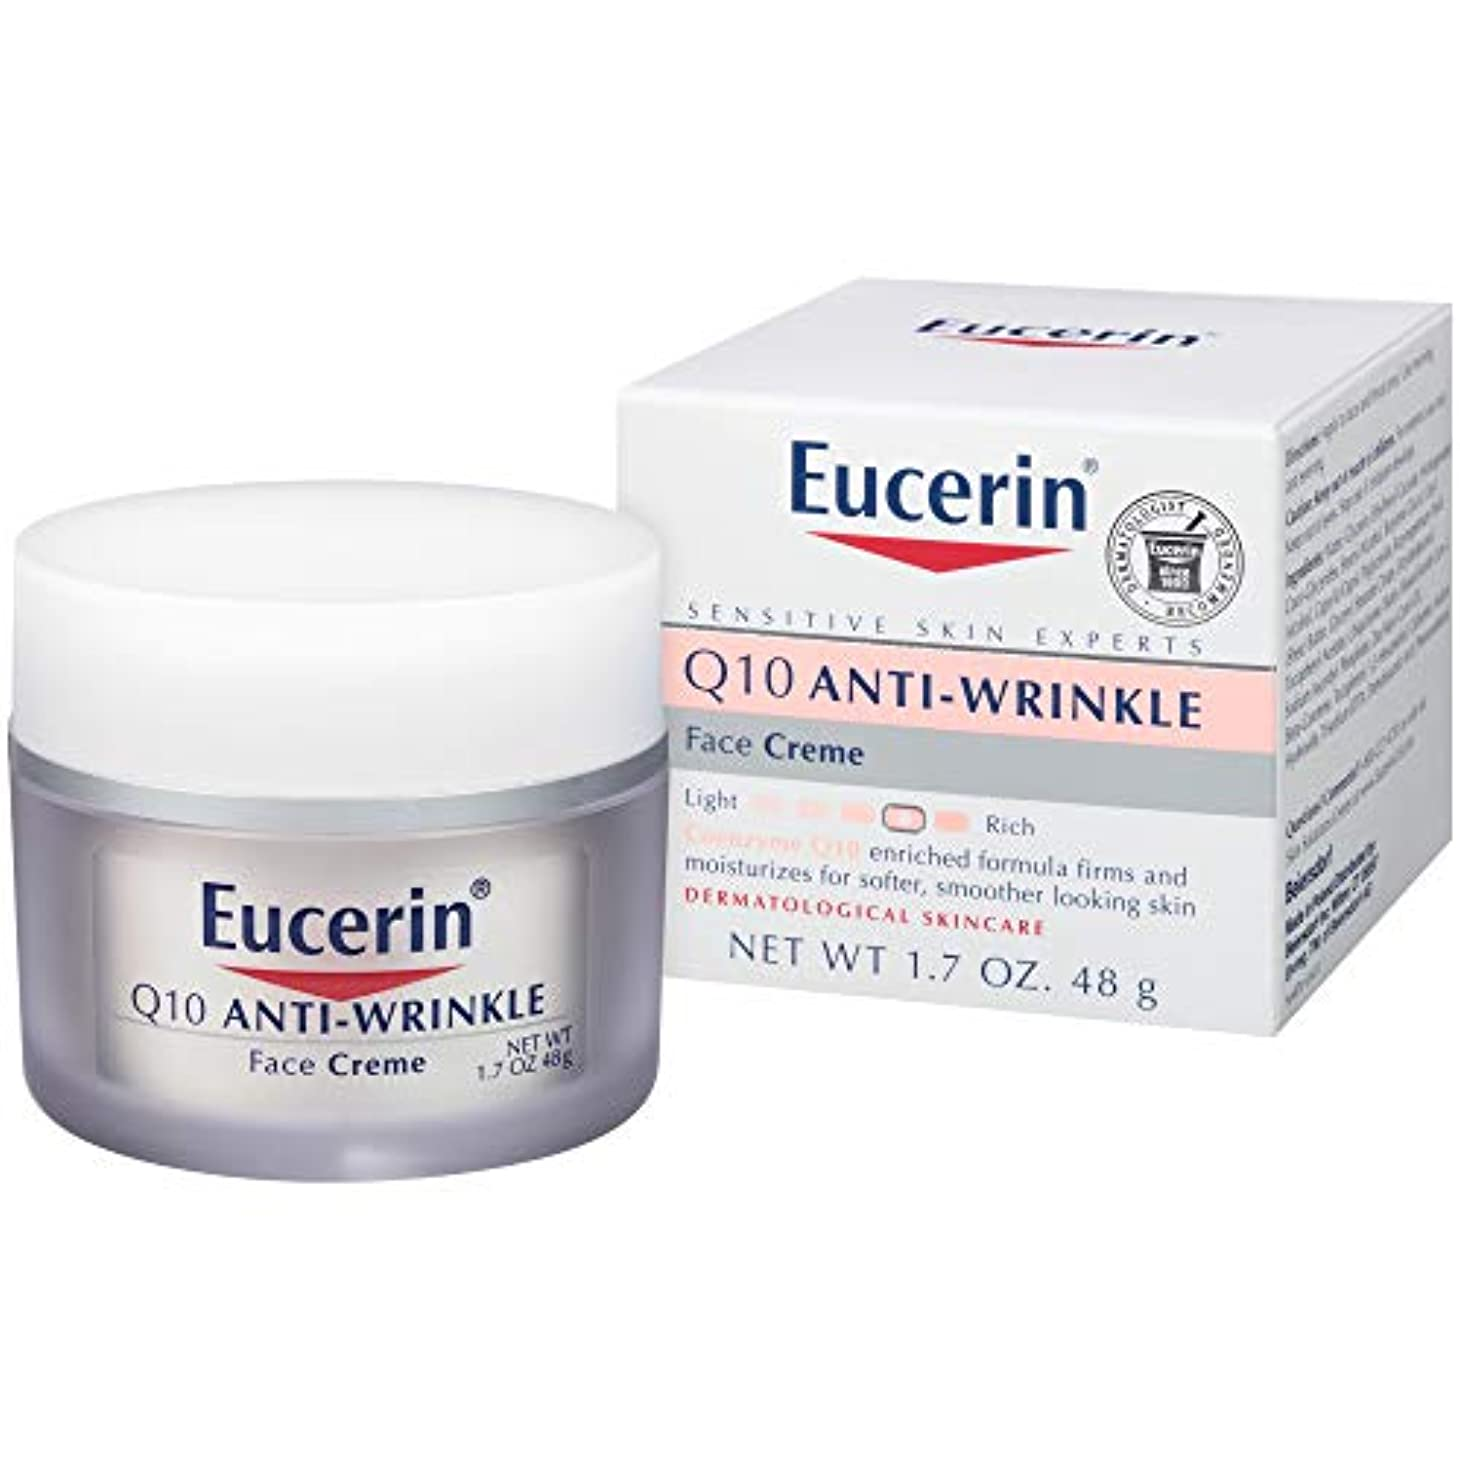 発症圧縮する急速なEucerin Sensitive Facial Skin Q10 Anti-Wrinkle Sensitive Skin Creme 48g (並行輸入品)